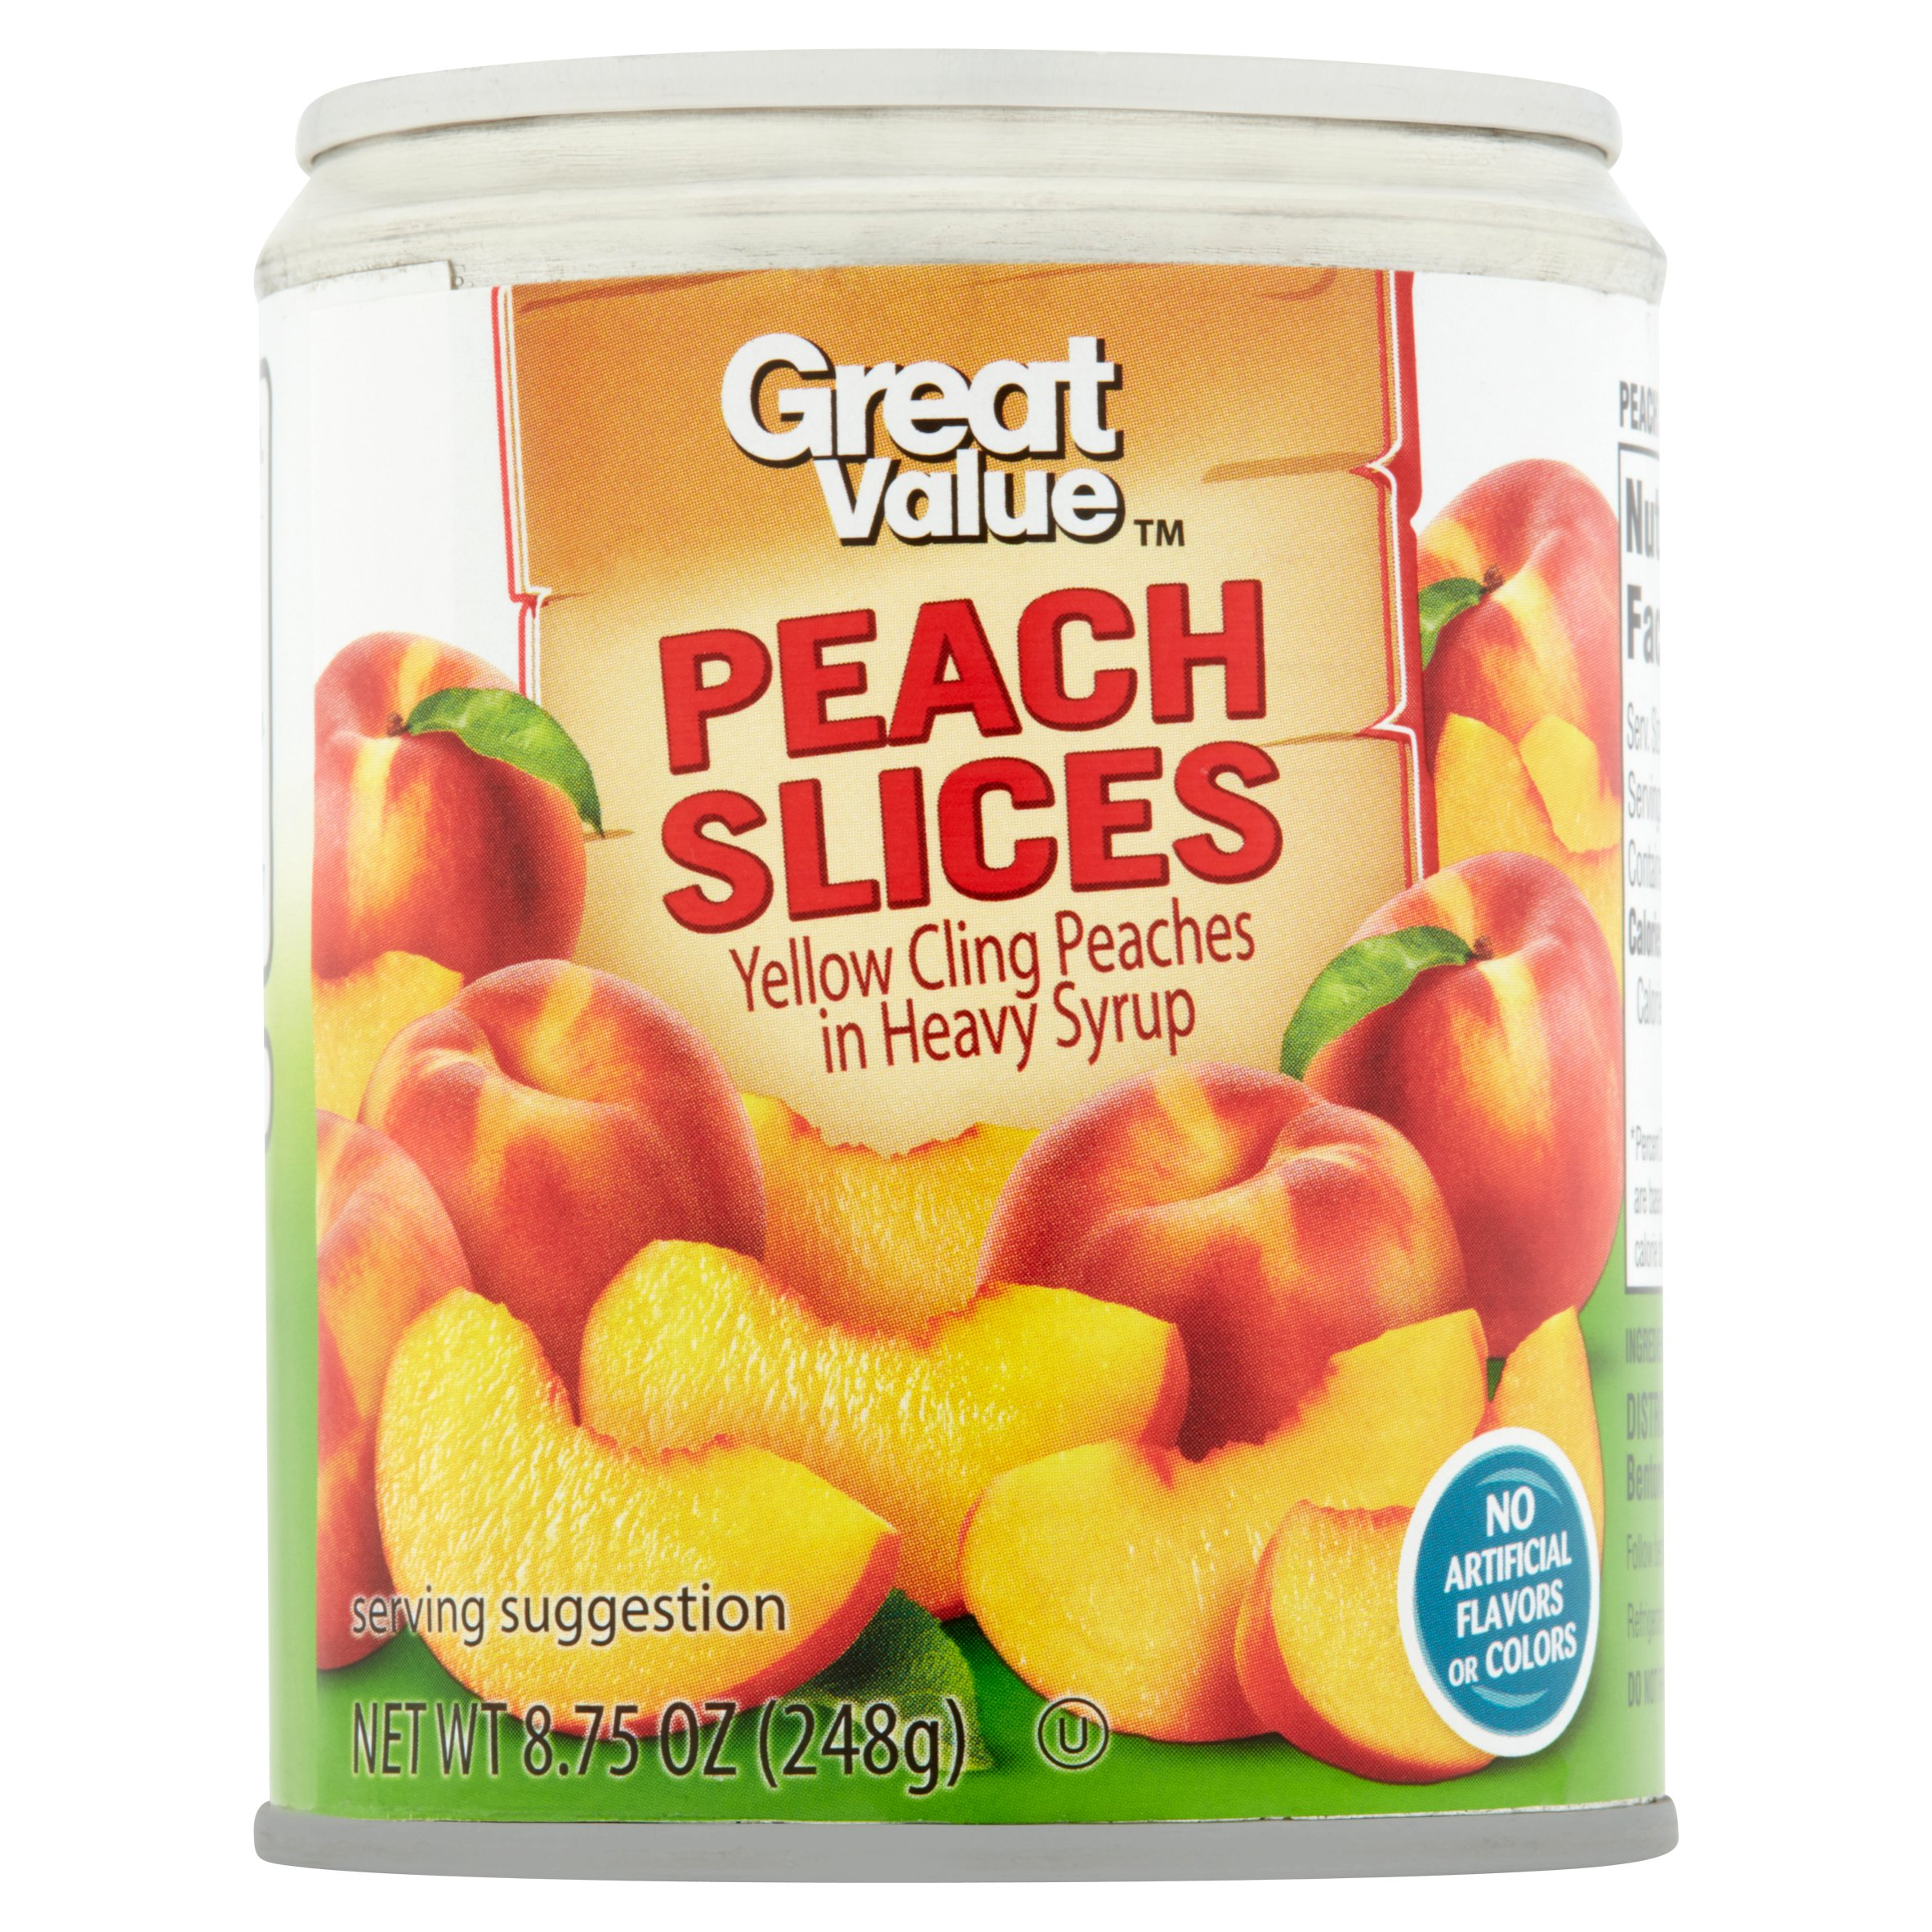 Great Value Peach Slices 8.75 oz